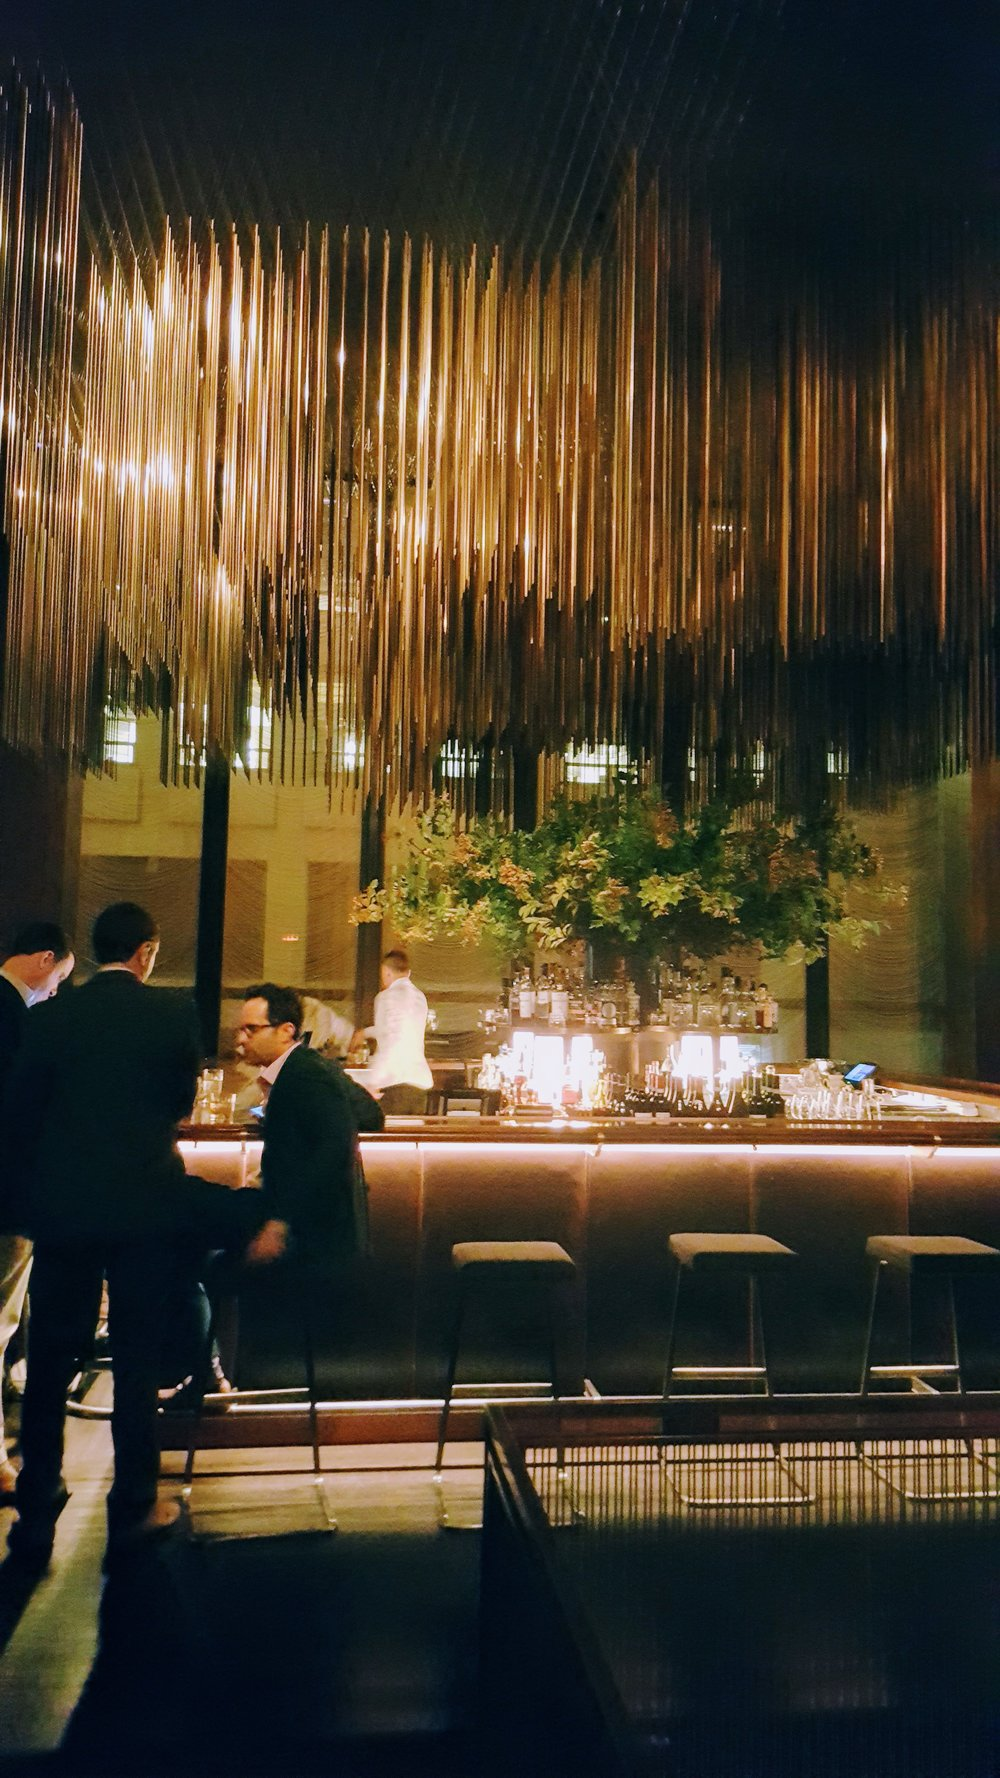 One of the most luxe, striking bars I've ever seen, within The Grill. The two images   below   are in the same dining room - the famed dessert trays, in the style of The Four Seasons restaurant.